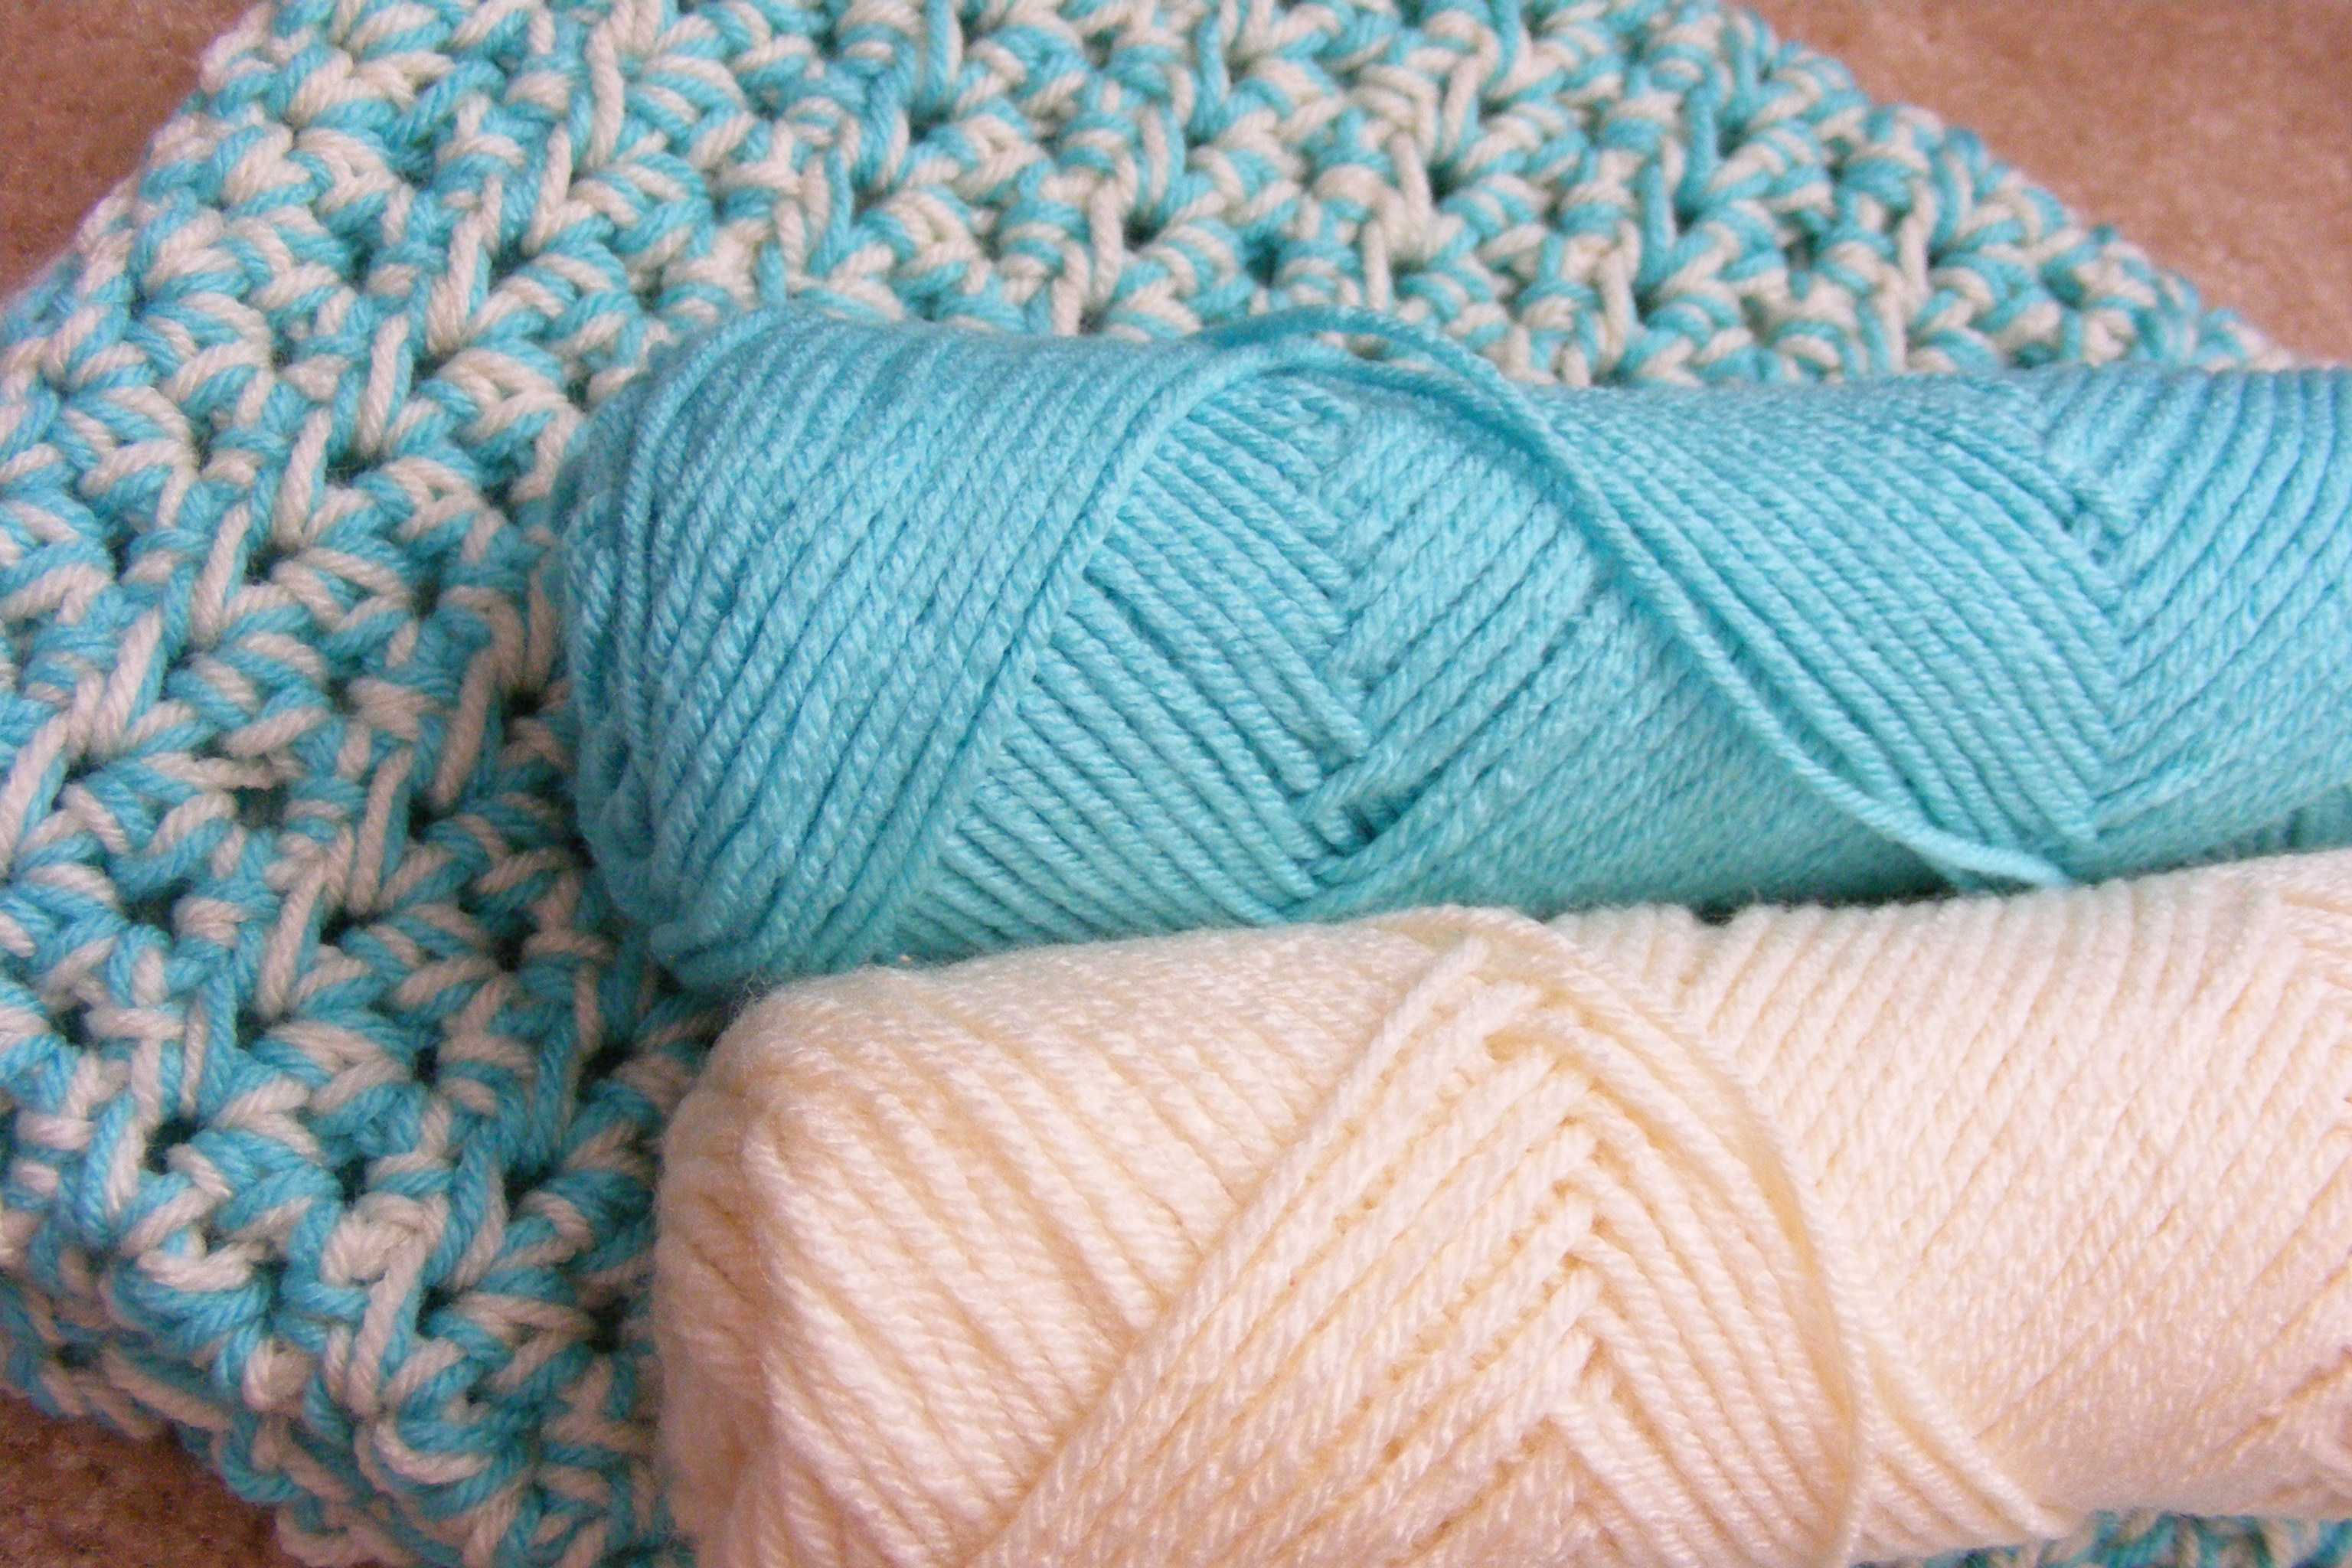 Crocheting A Baby Blanket : Crochet Basket & Two Baby Blankets GretchKals Yarny Adventures